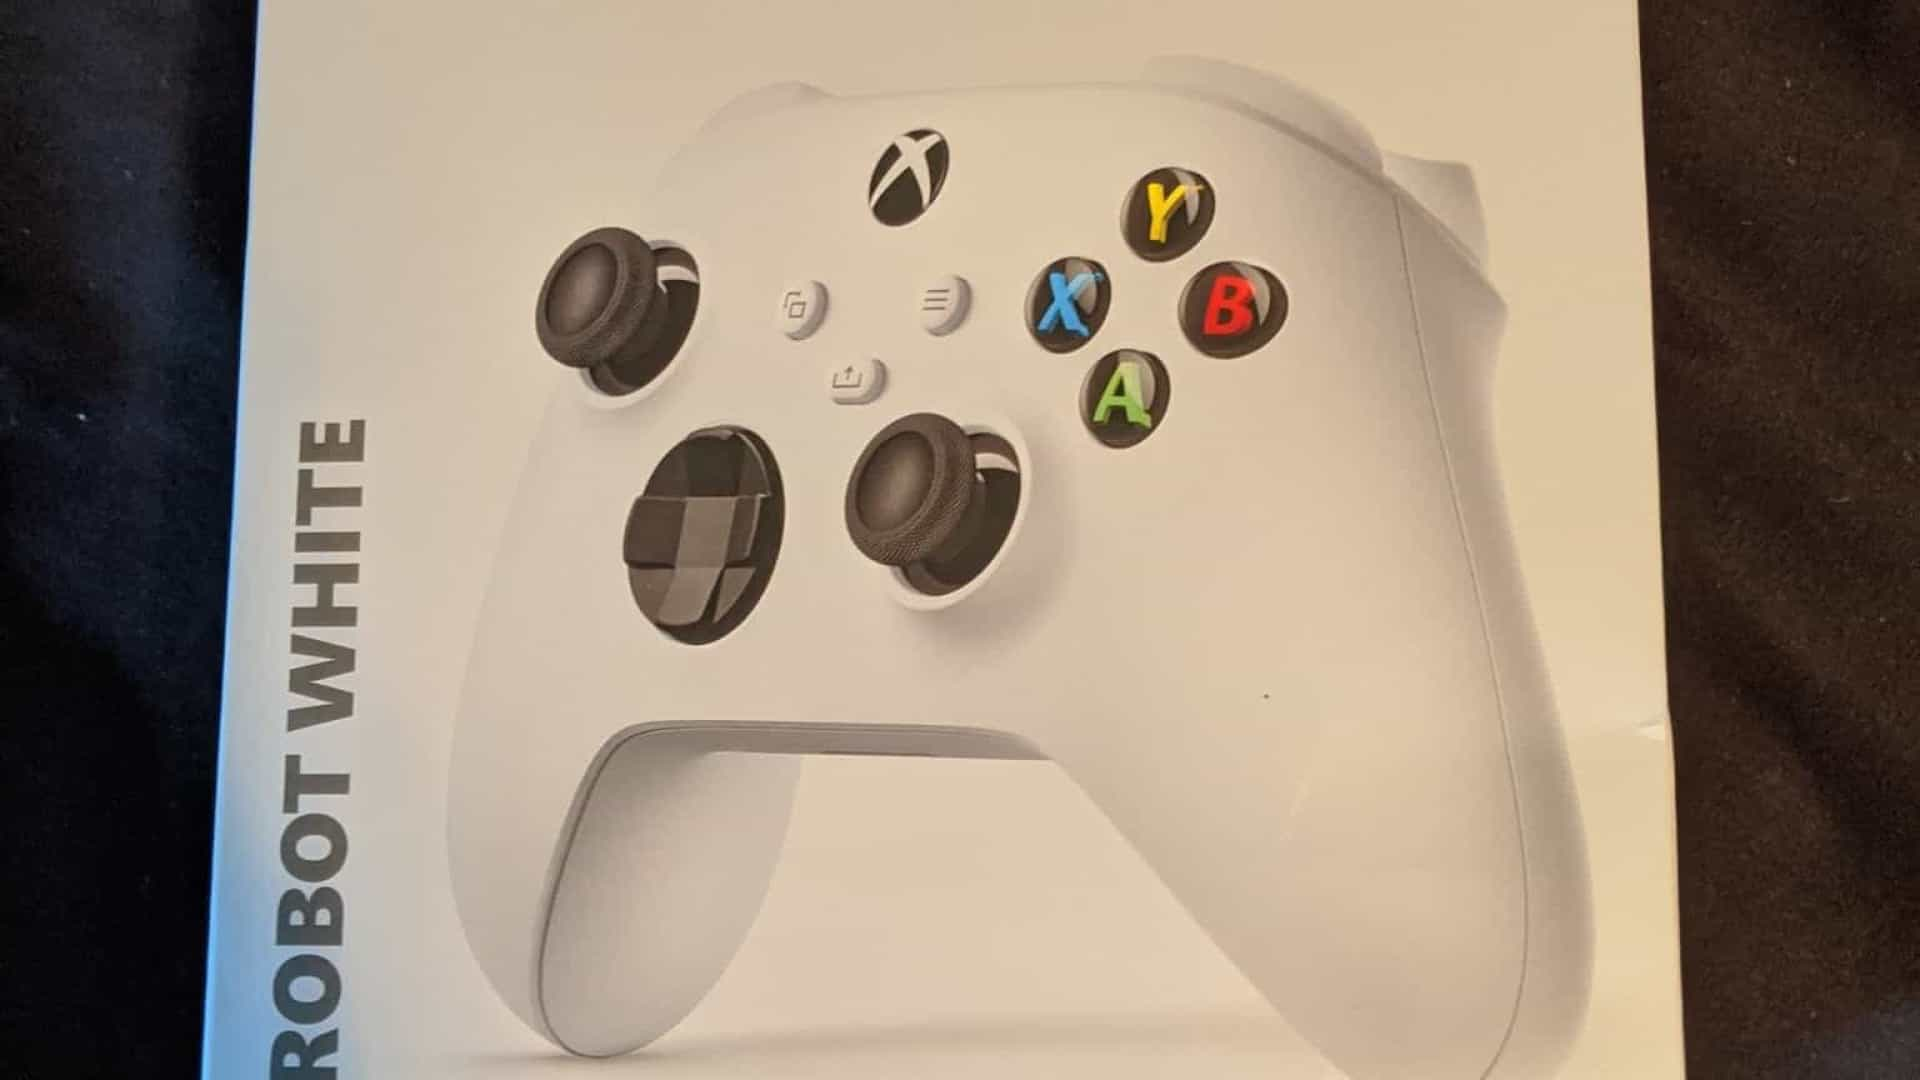 Imagem do comando confirma segundo modelo do novo Xbox